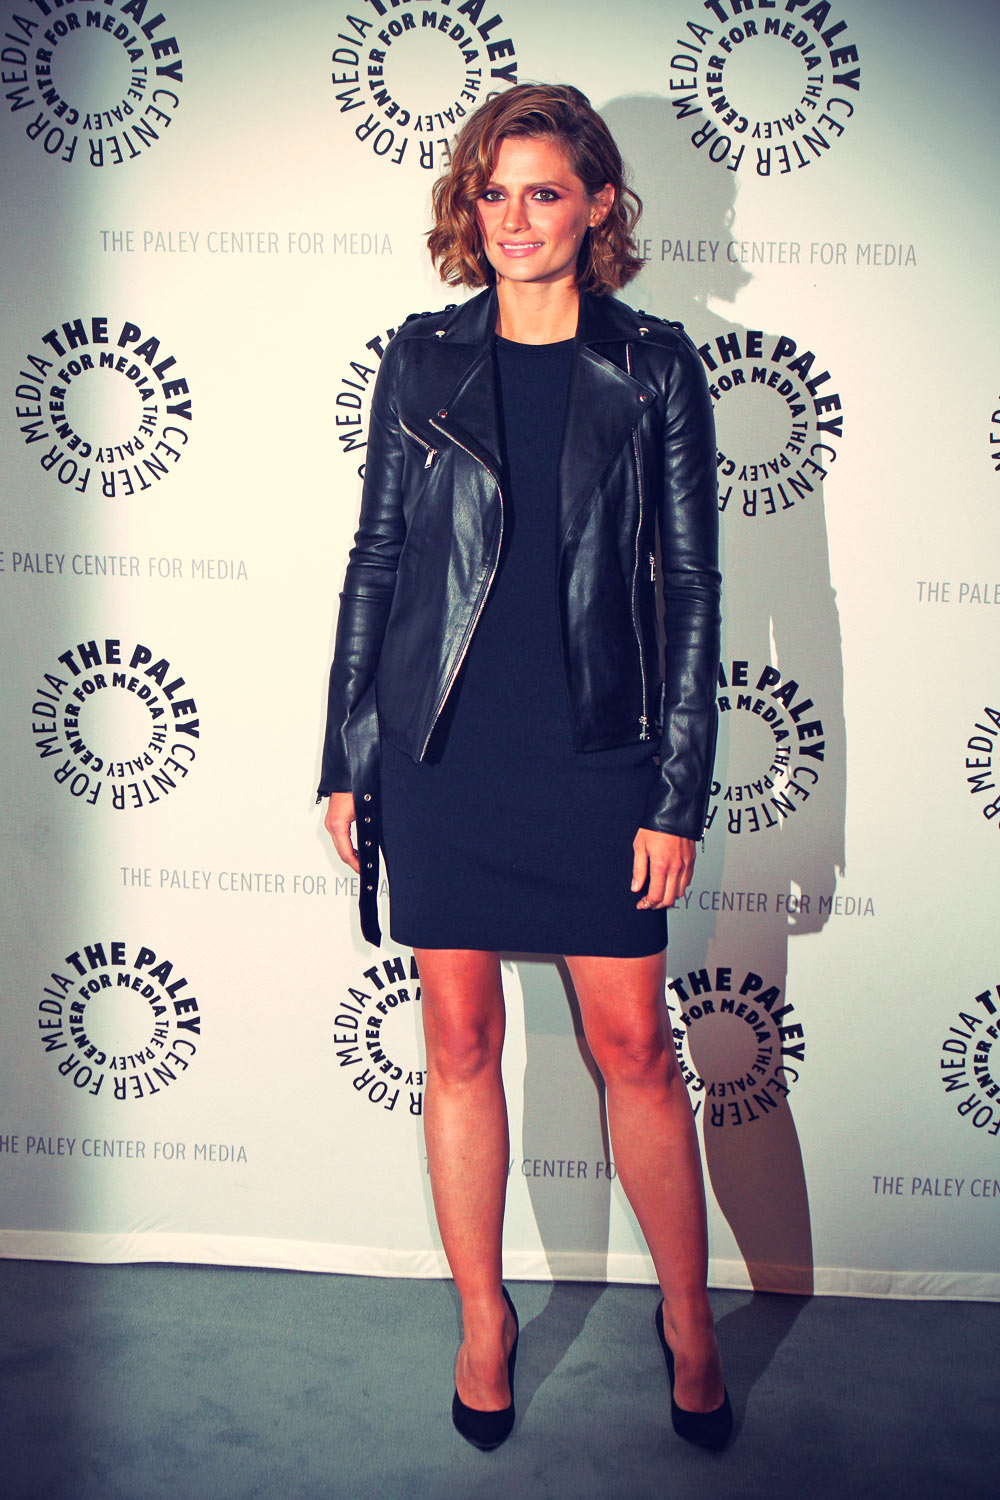 Stana Katic An Evening with Castle at the Paley Center For Media